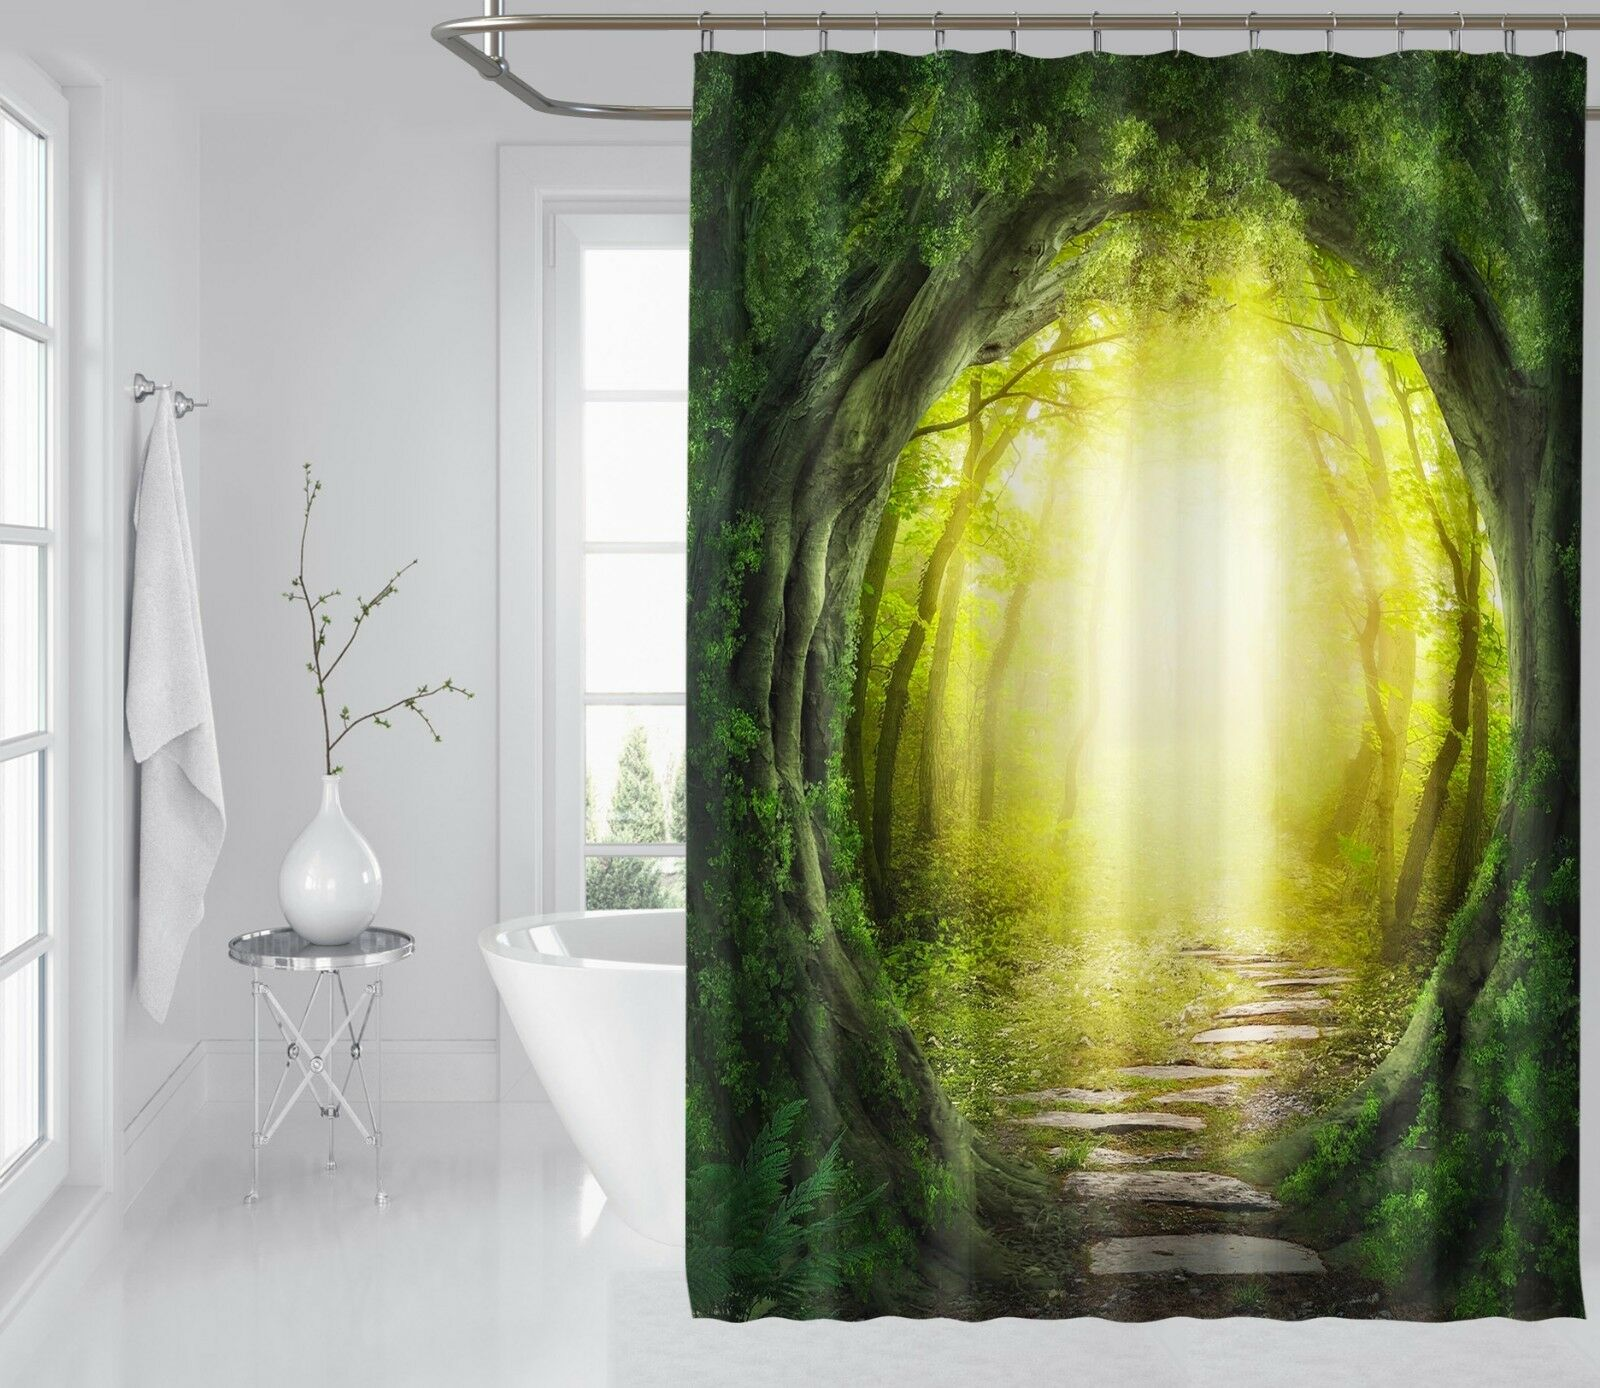 3D Tree Hole Door 77 Shower Curtain Waterproof Fiber Bathroom Windows Toilet